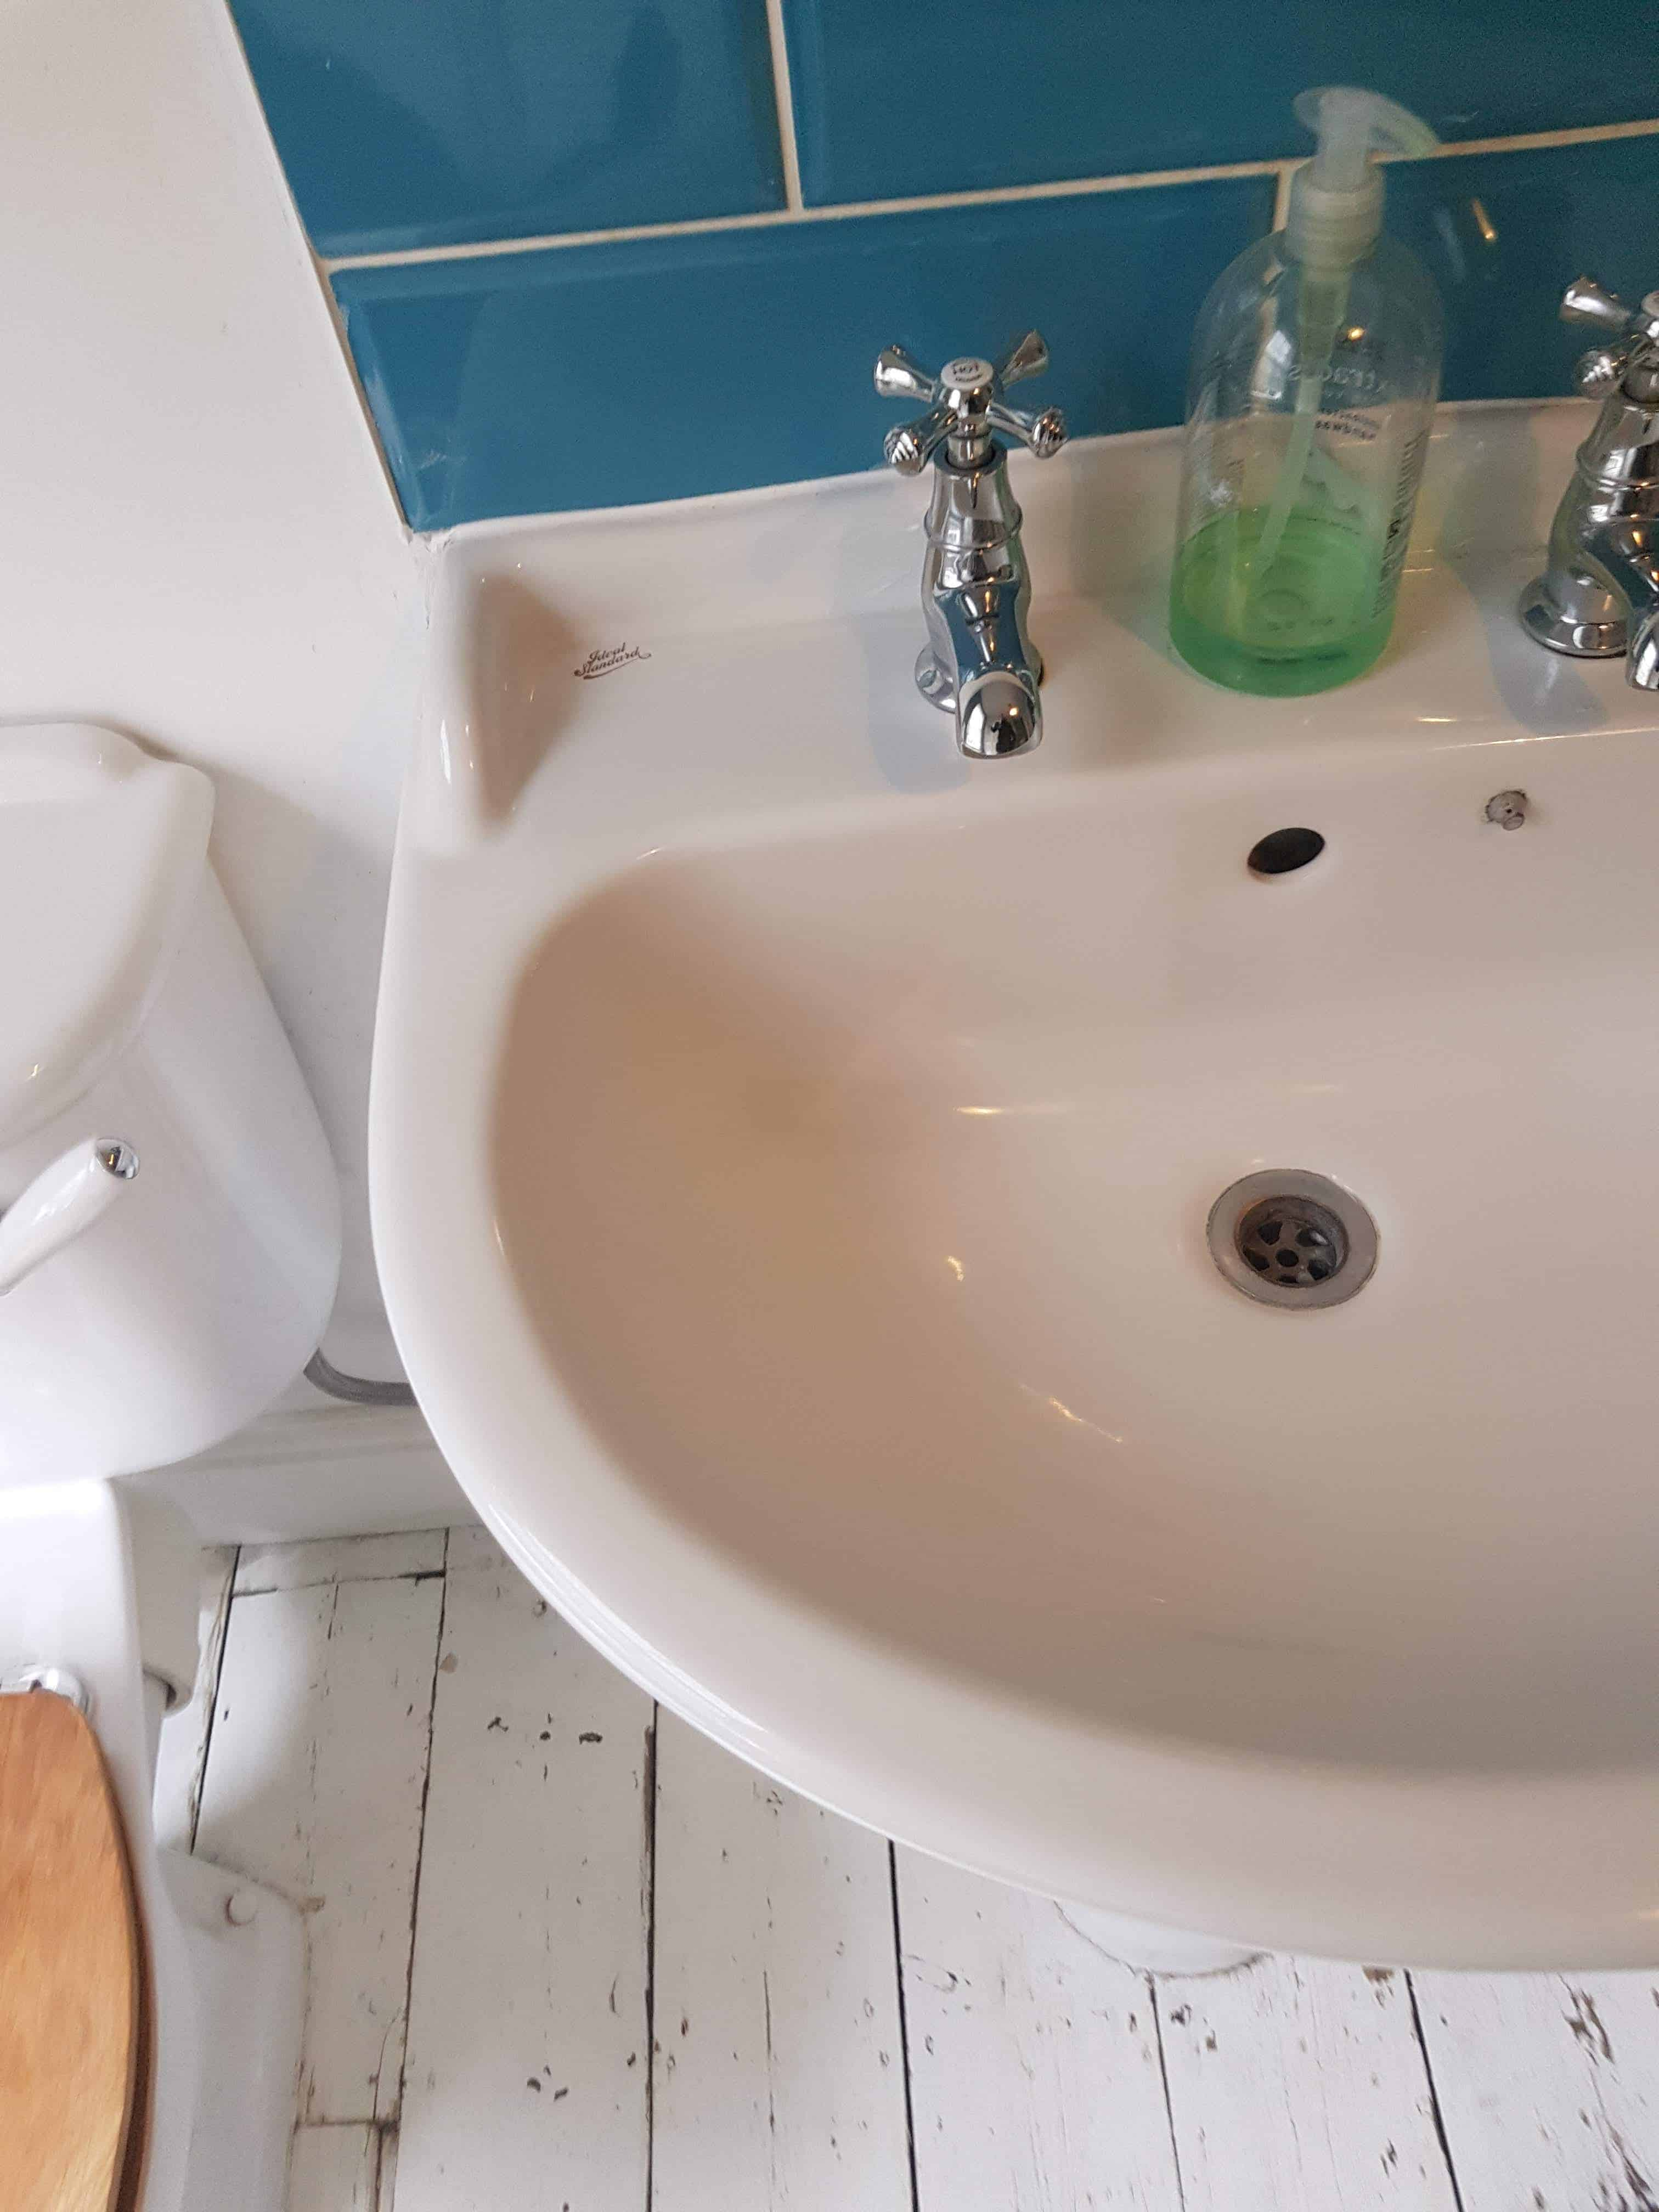 5 examples of time and cost effective bath enamel repair. 3